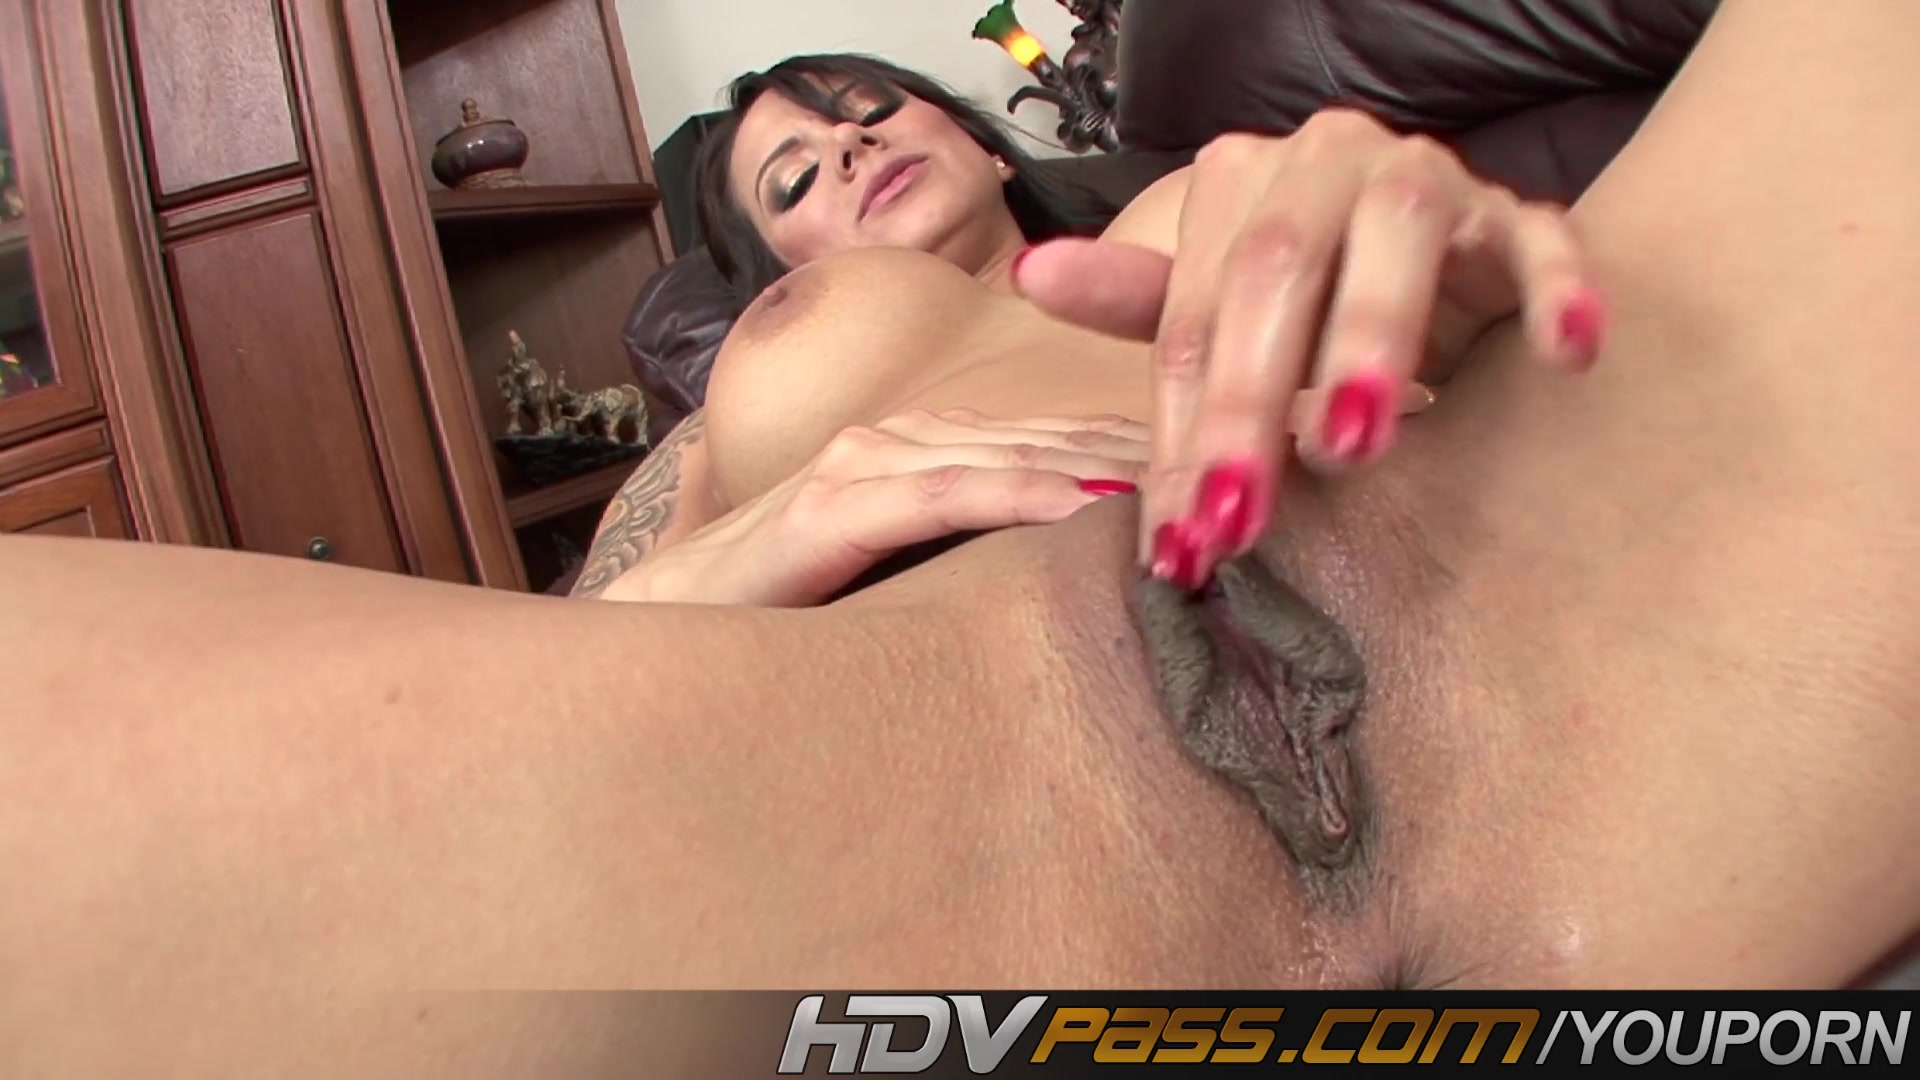 image Hdvpass nadia styles fingers her cunny and ass